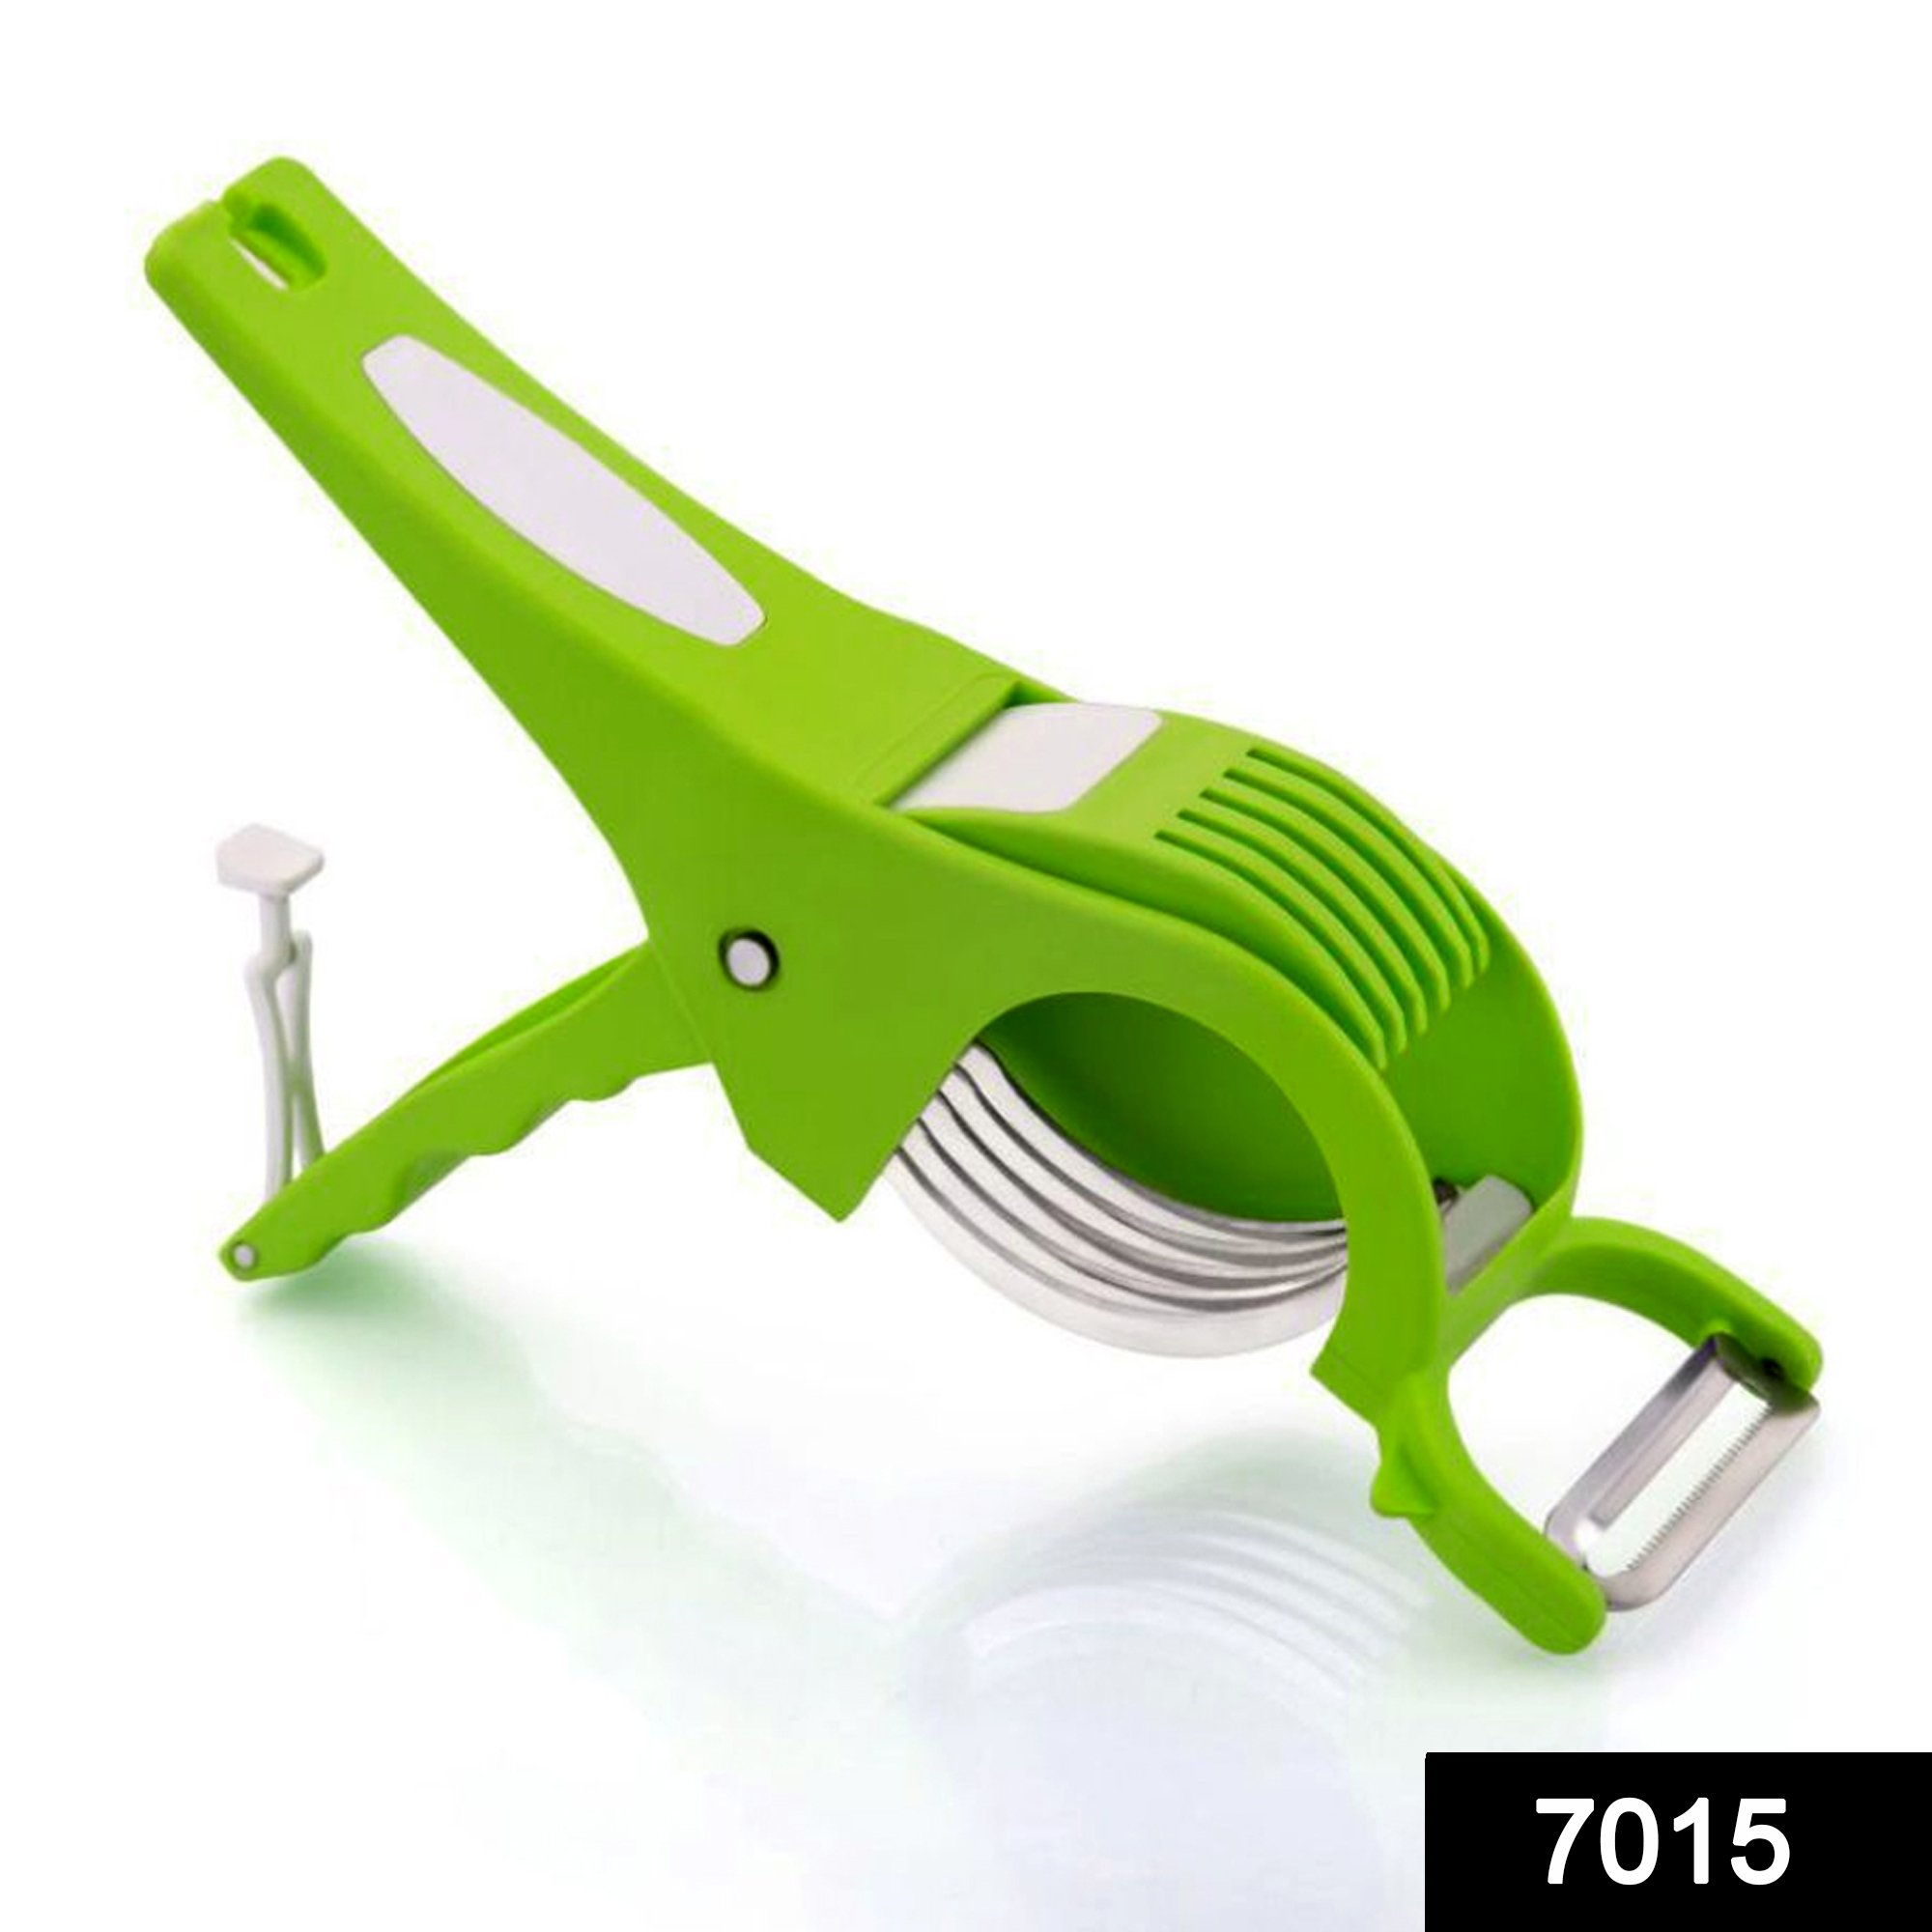 7015 2-in-1 Veg Cutter with Stainless Steel Blade (Multicolours) -